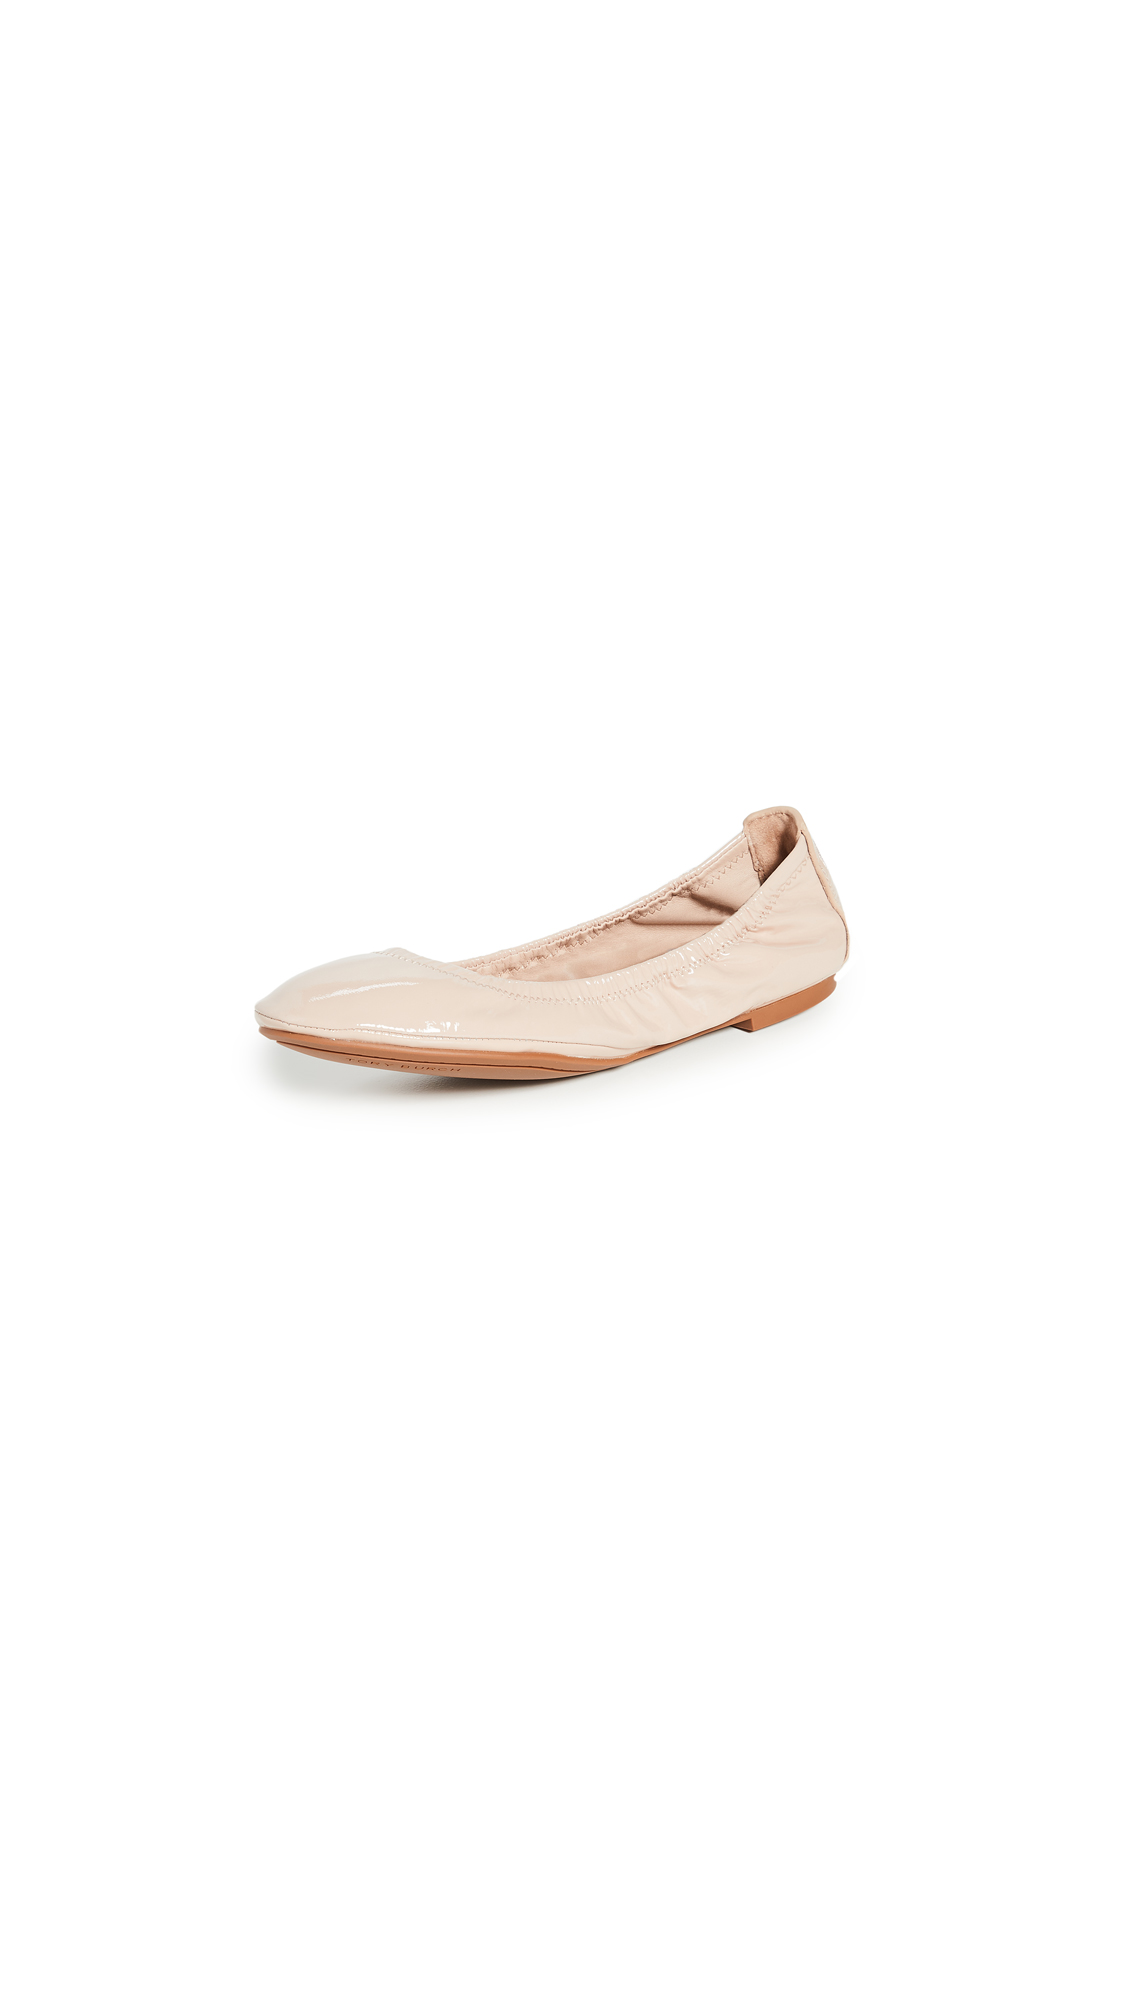 Tory Burch Eddie Ballet Flats - 40% Off Sale